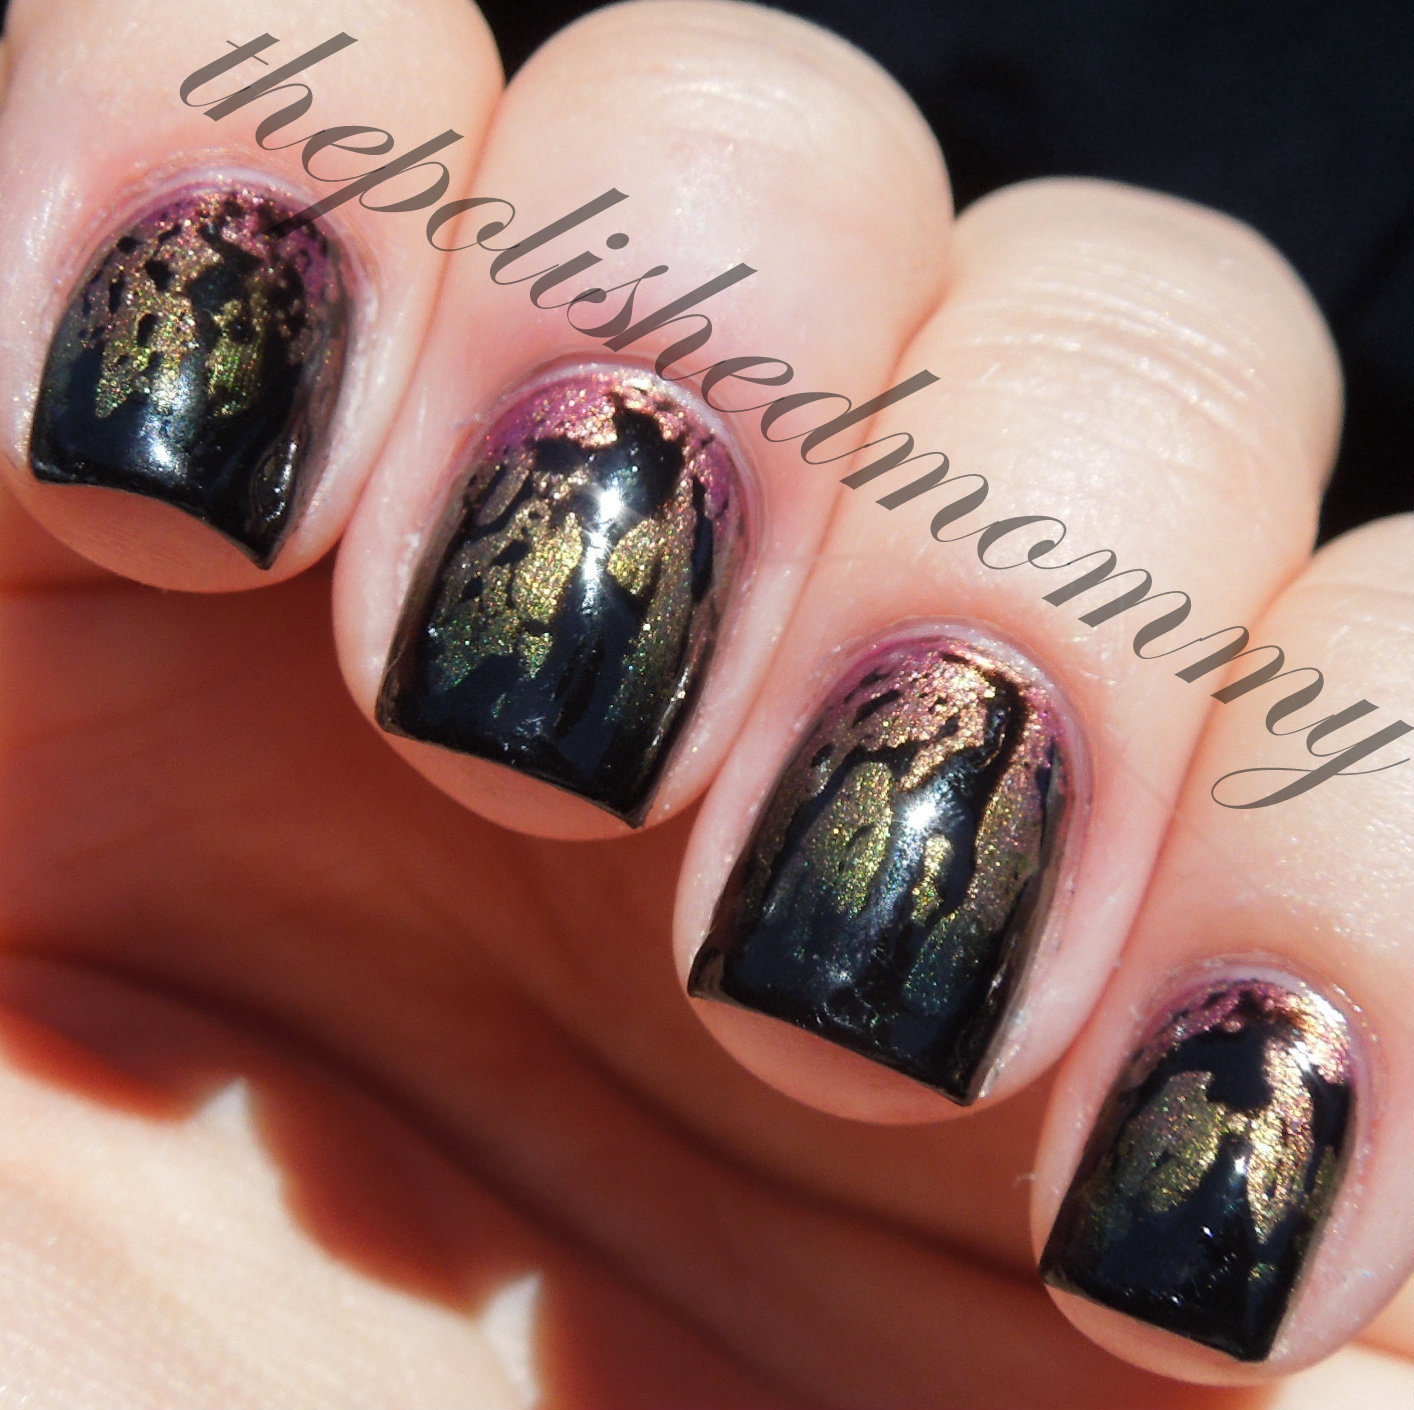 Oil Slick... - The Polished Mommy